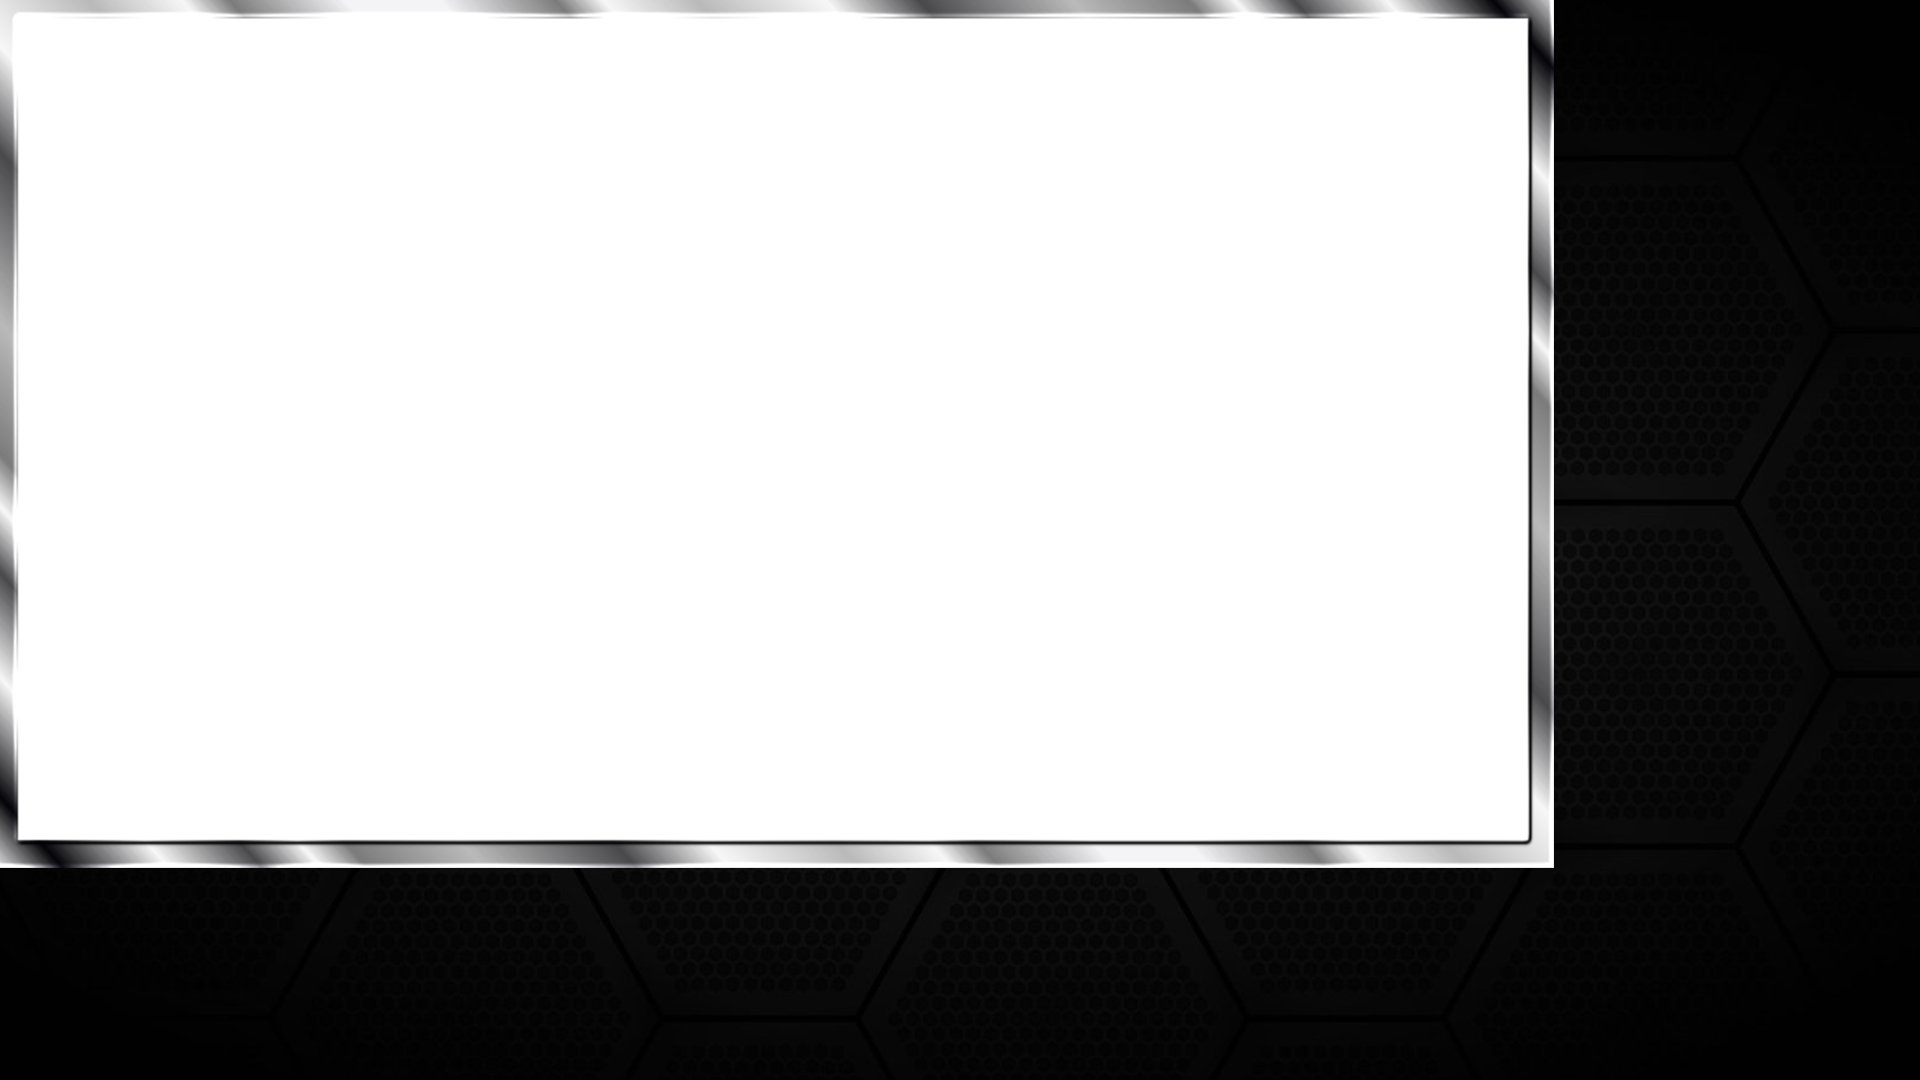 Twitch webcam overlay png. Free overlays black with